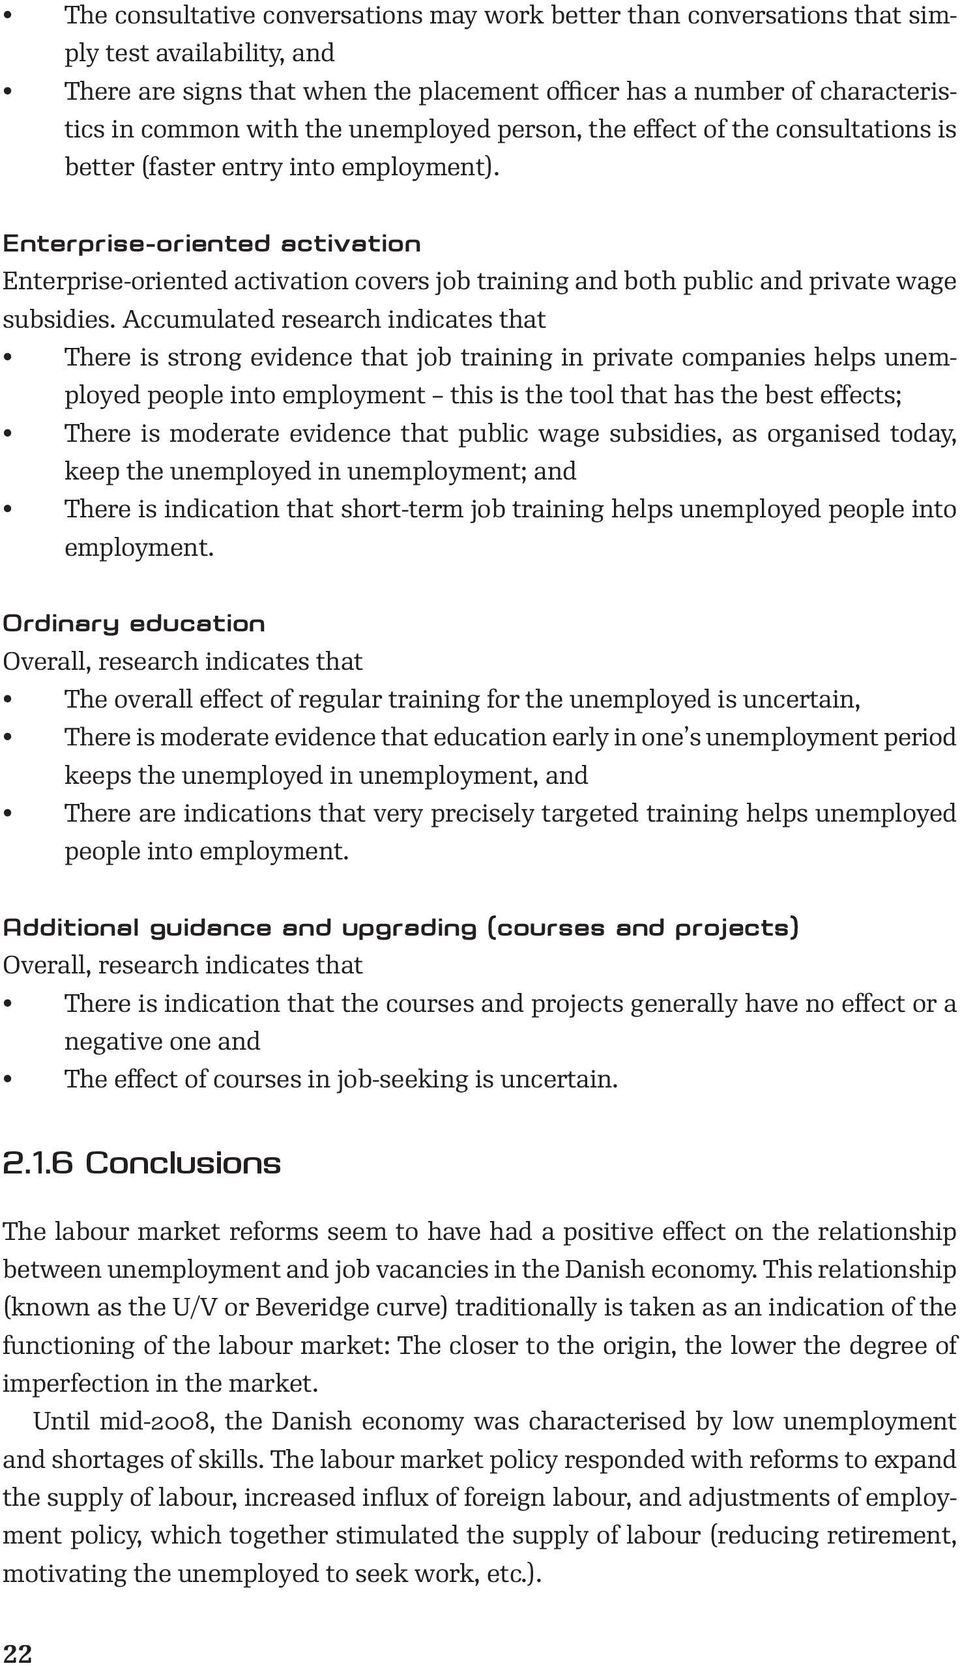 Enterprise-oriented activation Enterprise-oriented activation covers job training and both public and private wage subsidies.